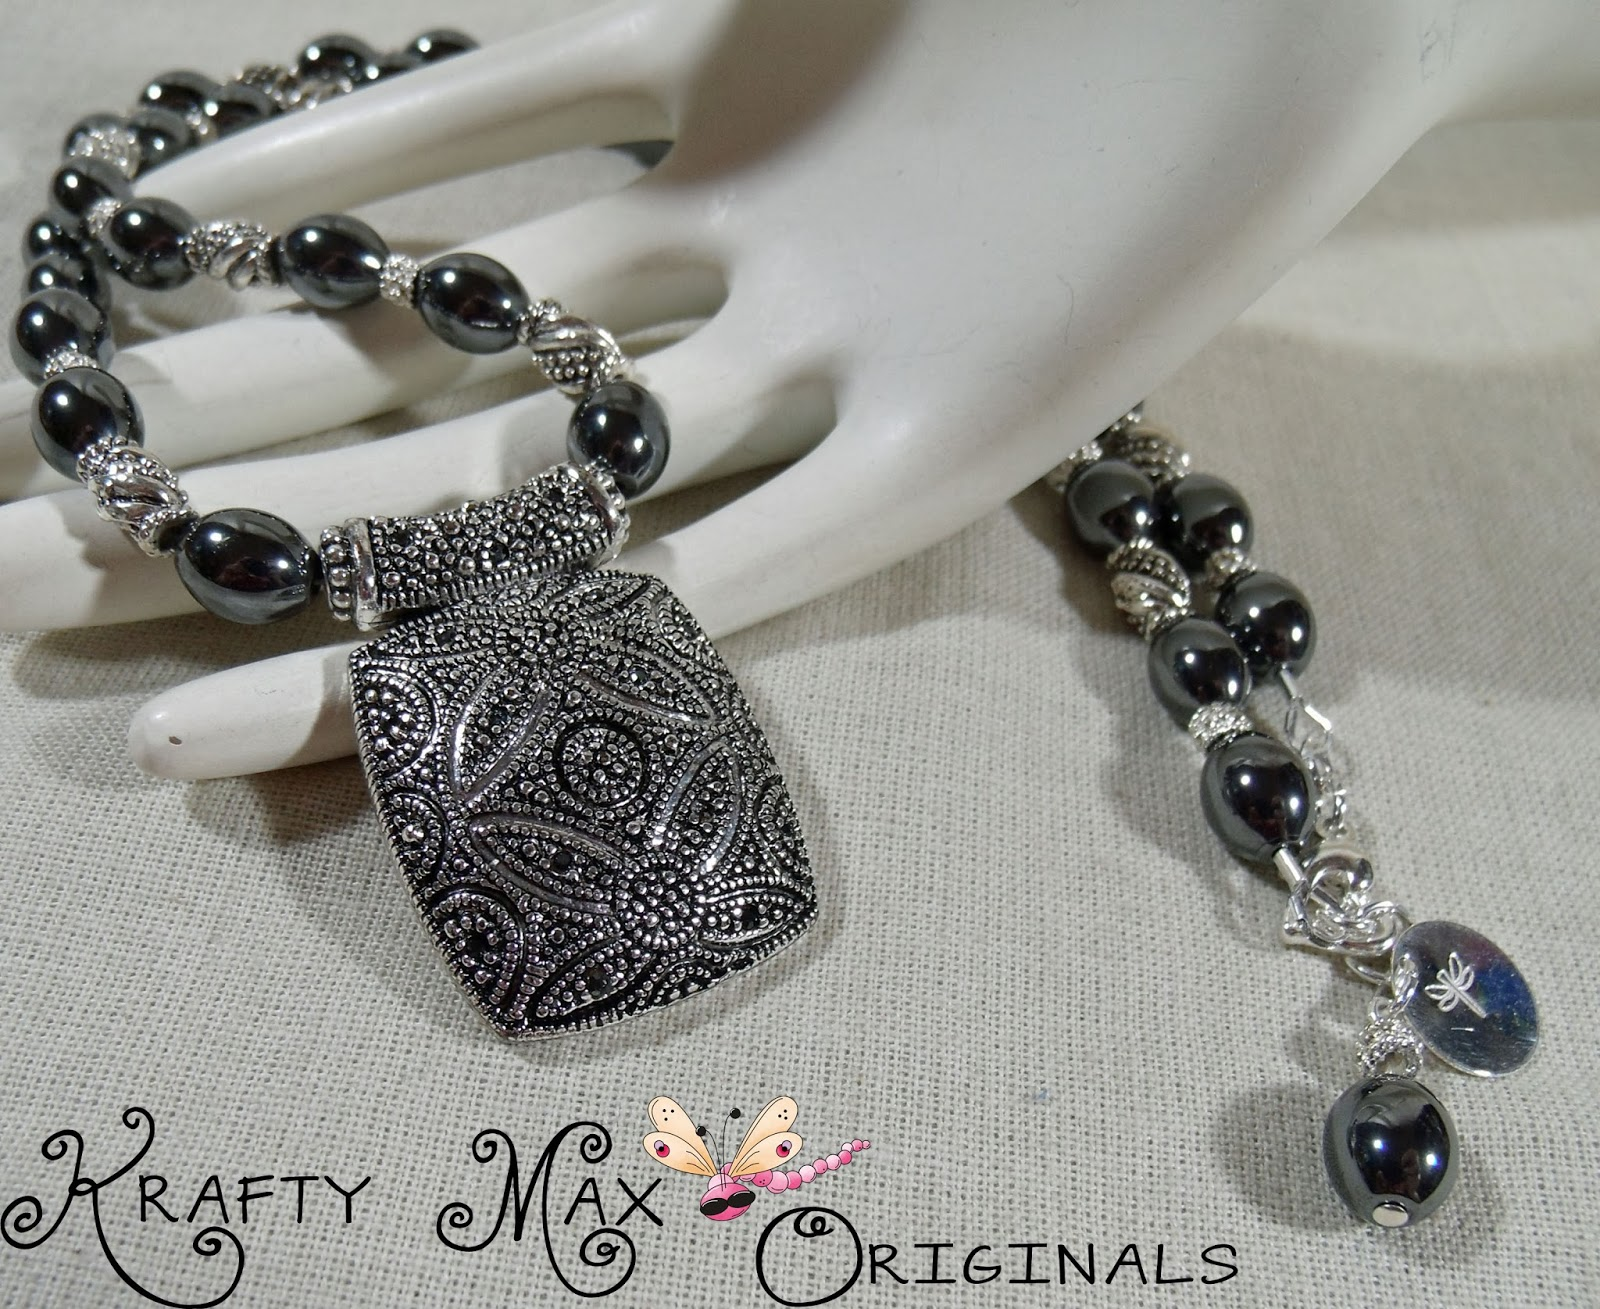 http://www.lajuliet.com/index.php/2013-01-04-15-21-51/ad/metal,94/exclusive-hematite-and-silver-beautiful-necklace-set-a-krafty-max-original-design,127